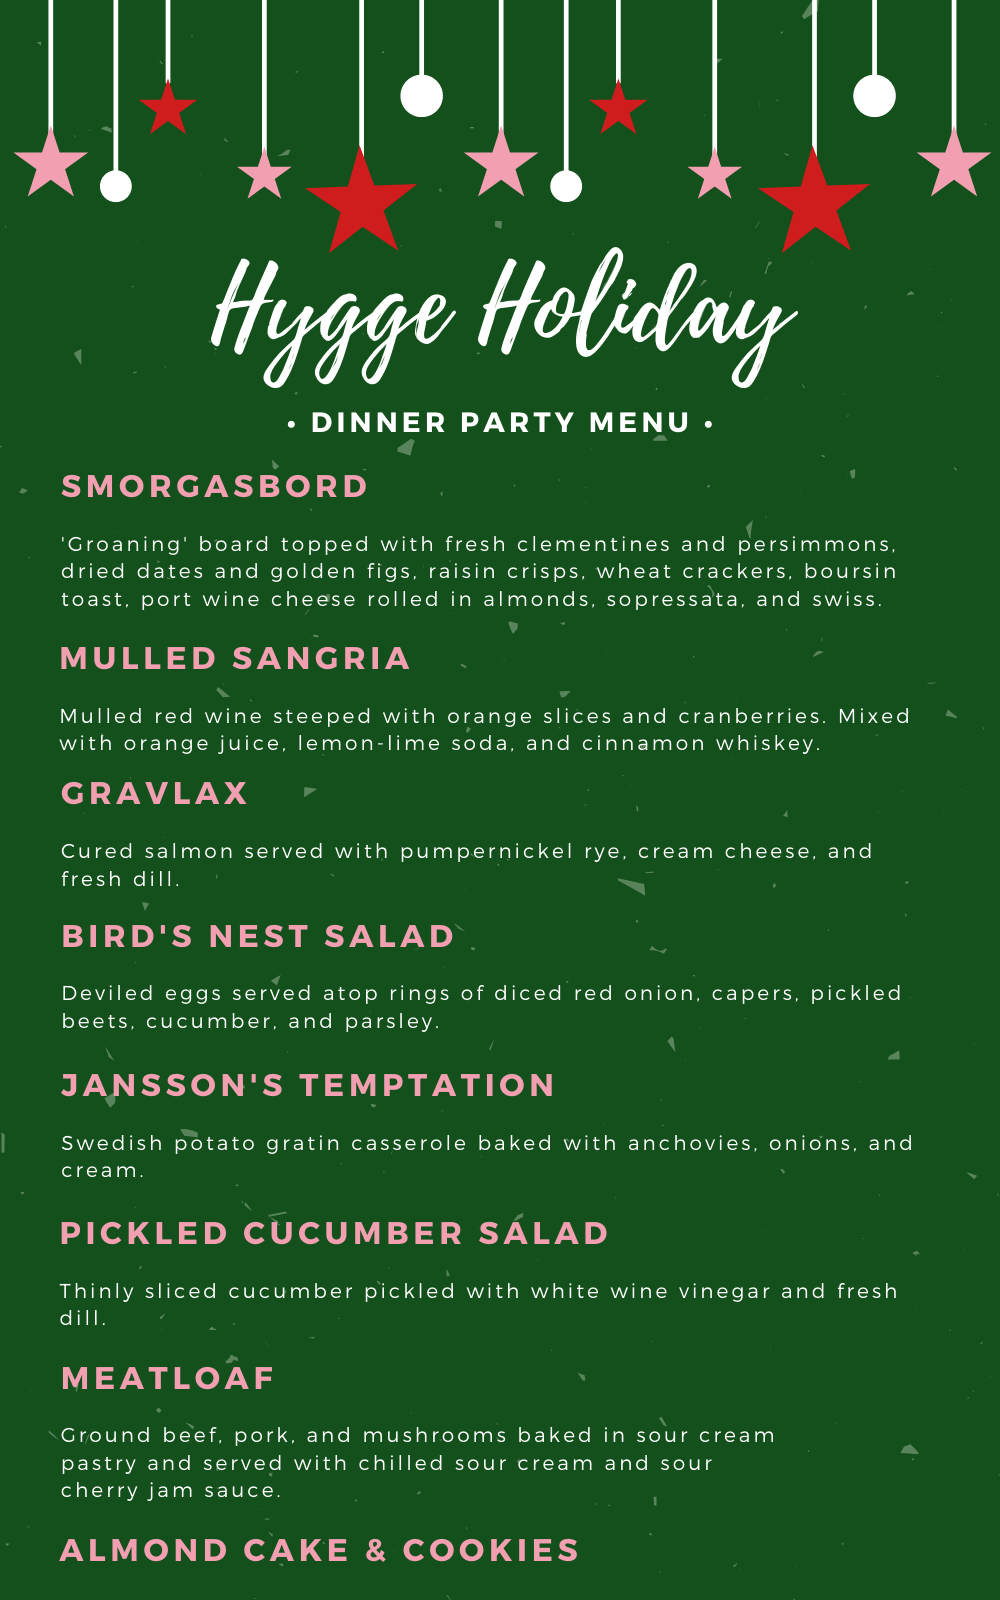 Hygge Holiday Dinner Party A Scandinavian And Swedish Inspired Dinner Menu For A Cozy And Intimate Friendsmas This Holiday Season Holiday Dinner Party Holiday Dinner Dinner Party